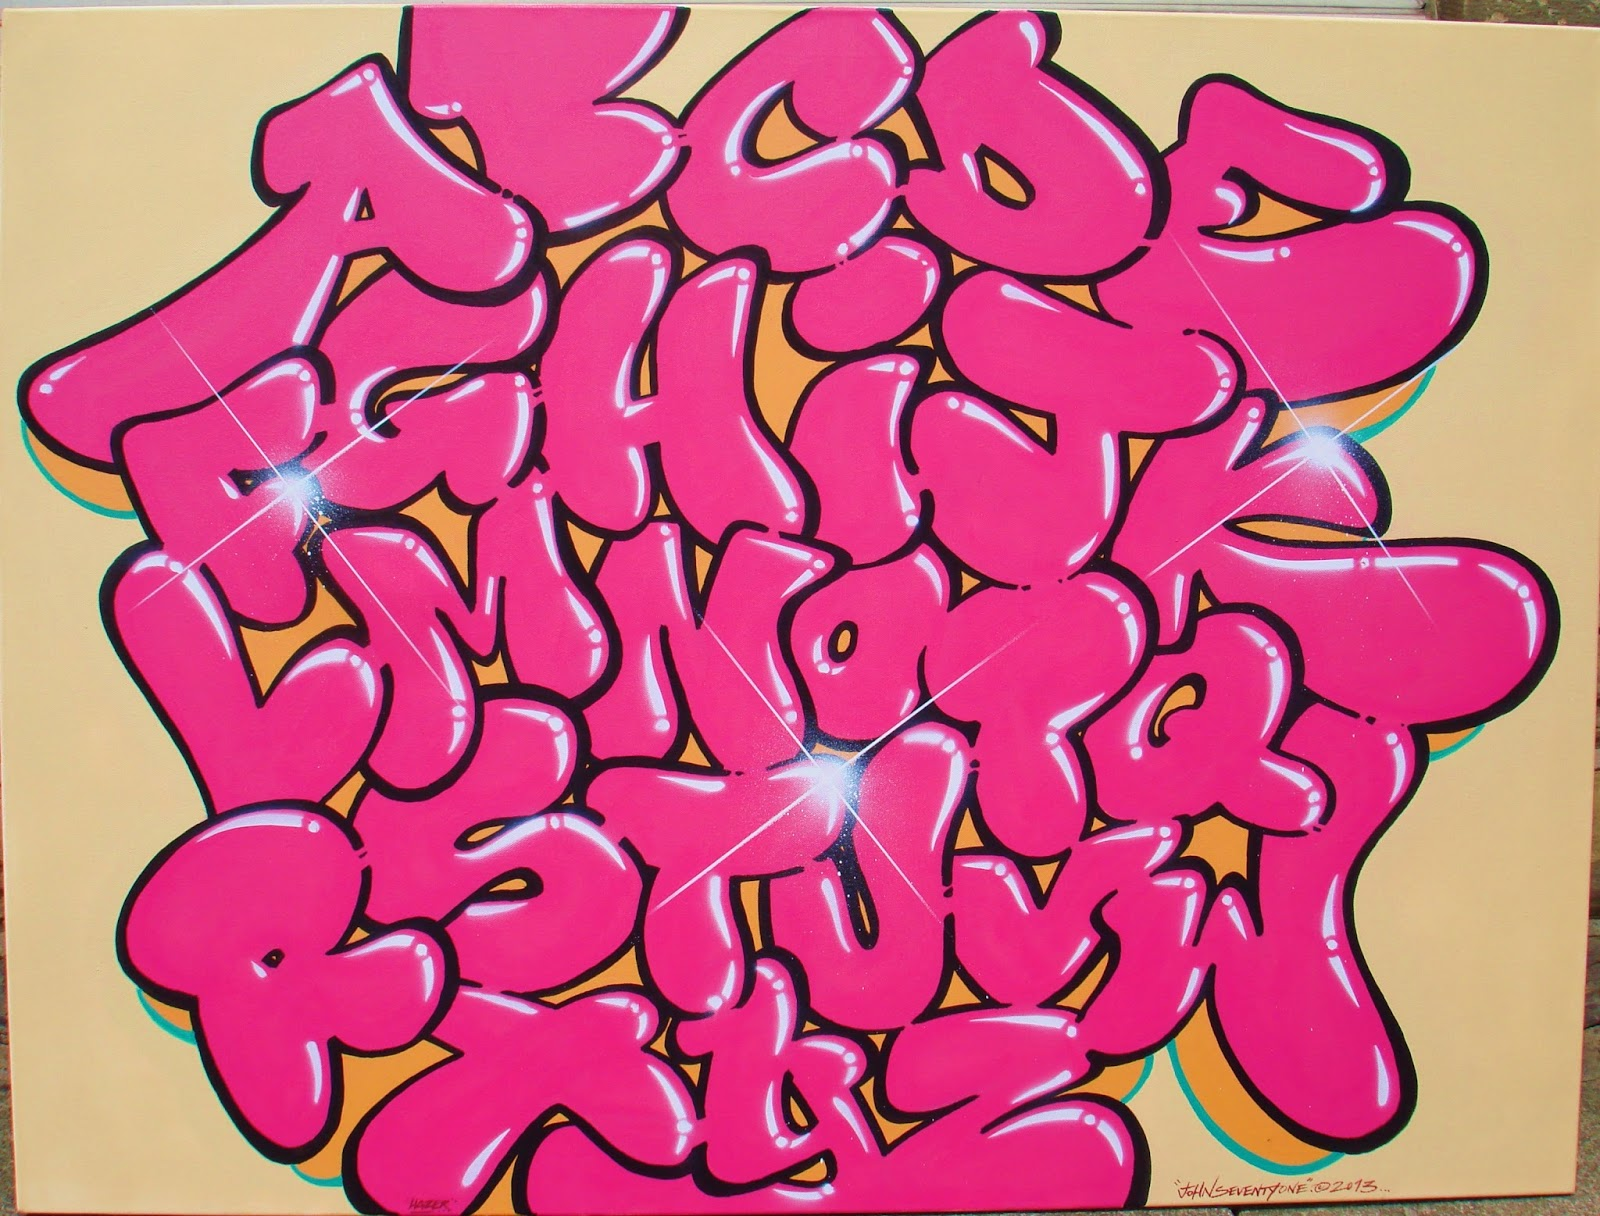 Graffiti creator styles graffiti alphabet tumblr - Graffiti alfabet ...